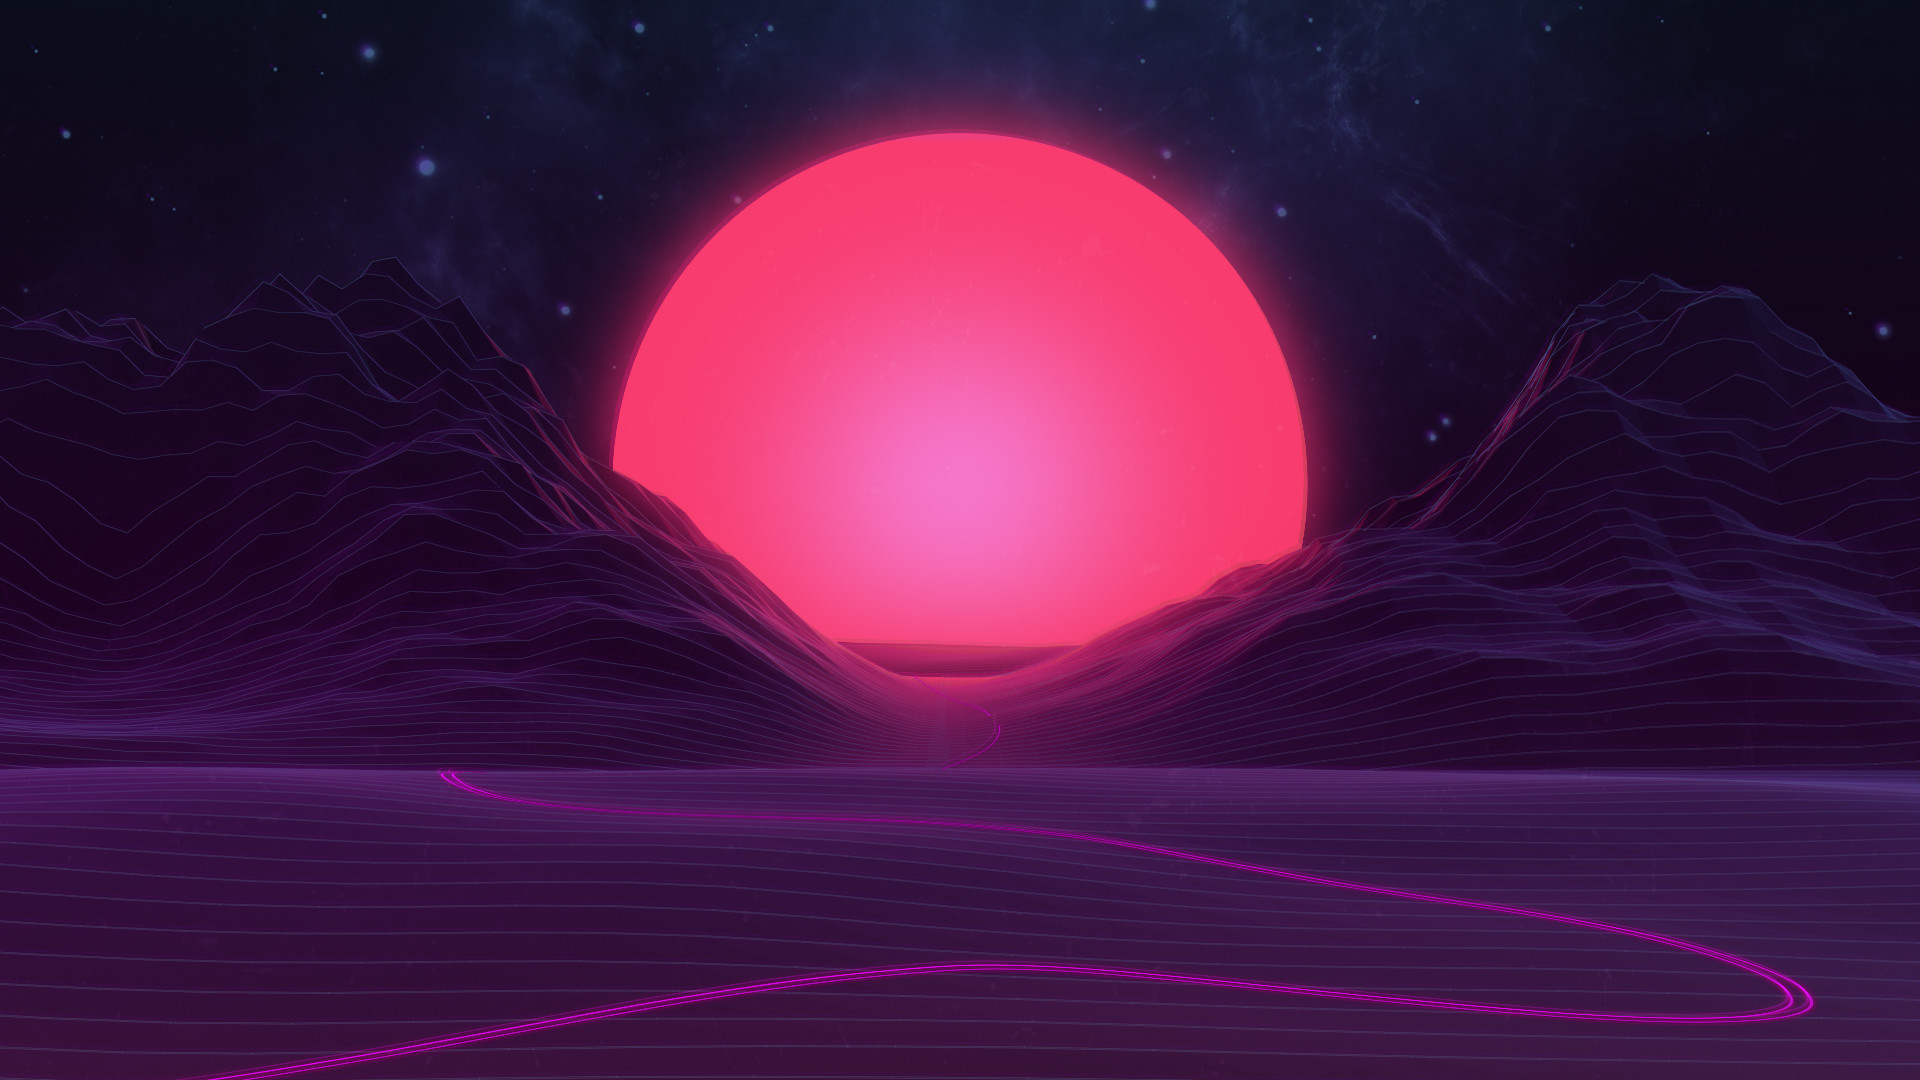 1920x1080 Neon Sunset by AxiomDesign Neon Sunset by AxiomDesign